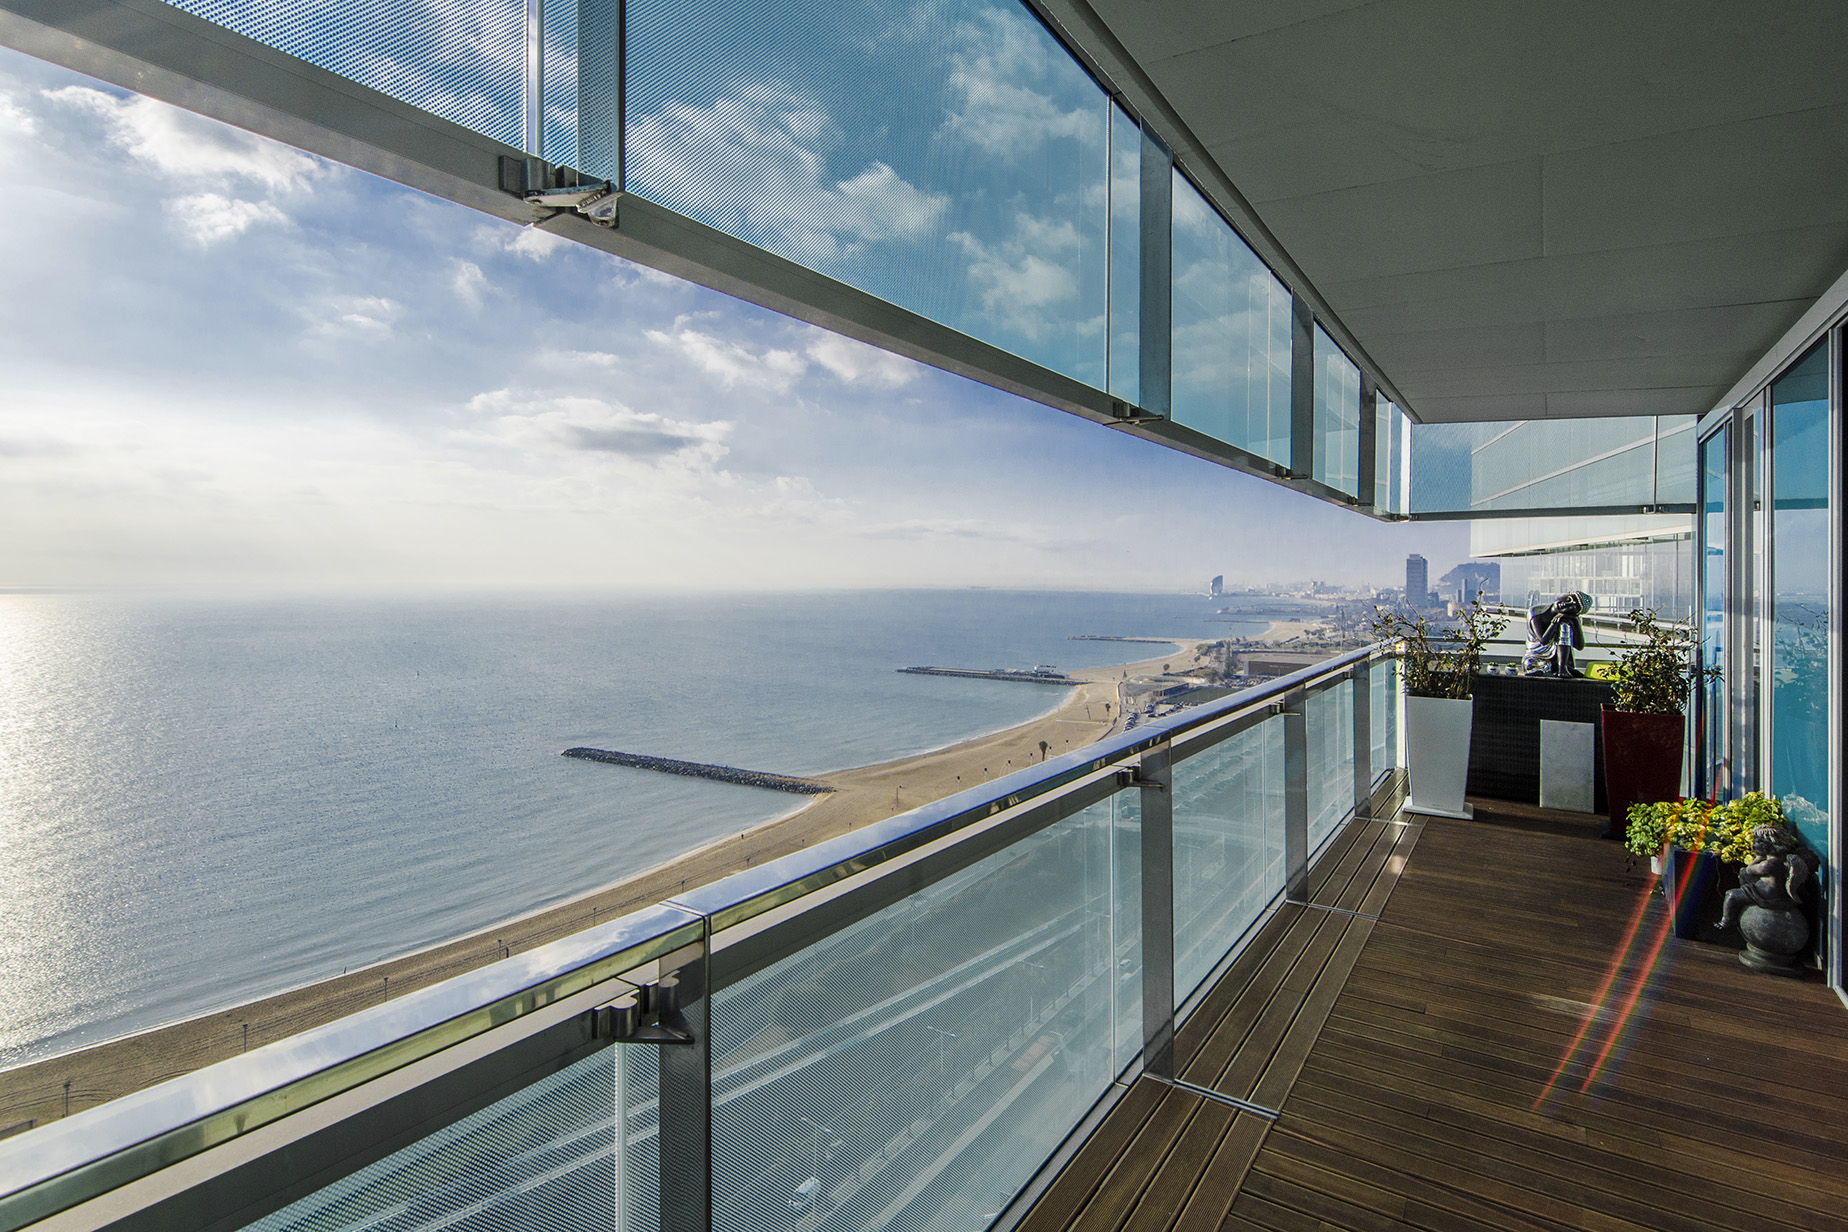 Appartement pour l Vente à Exclusive Seafront Apartment with excellent views to the sea and the city of ... Diagonal Mar, Barcelona City, Barcelona, 08019 Espagne